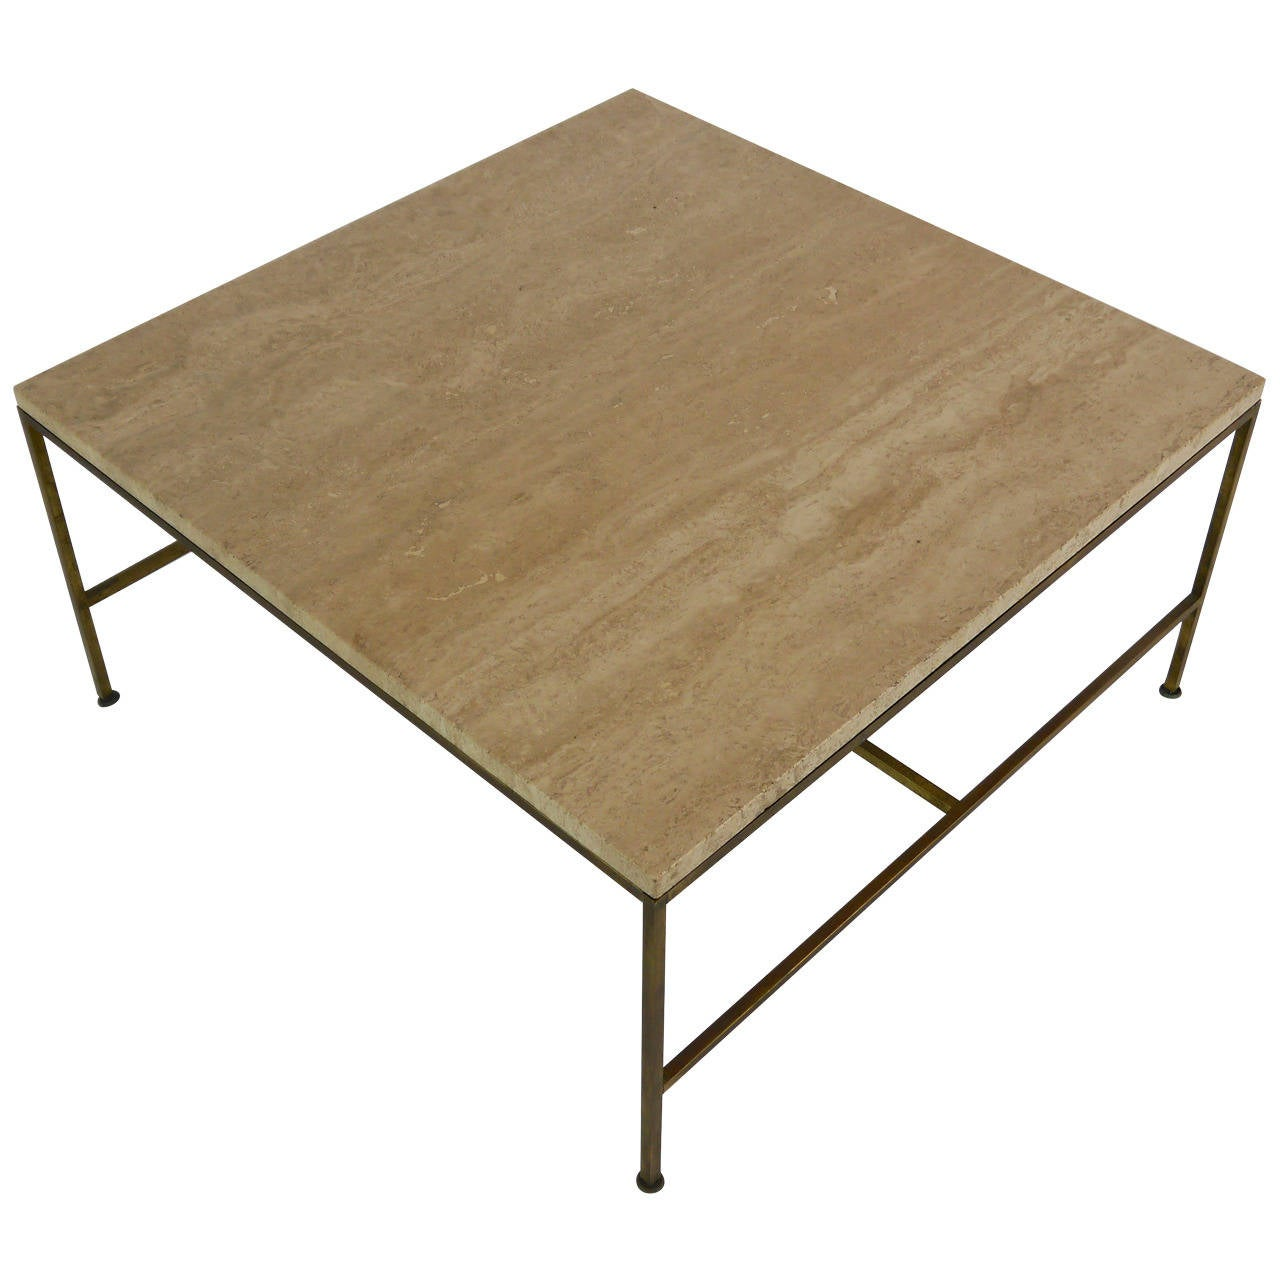 Cocktail Table In Brass And Travertine By Paul McCobb At